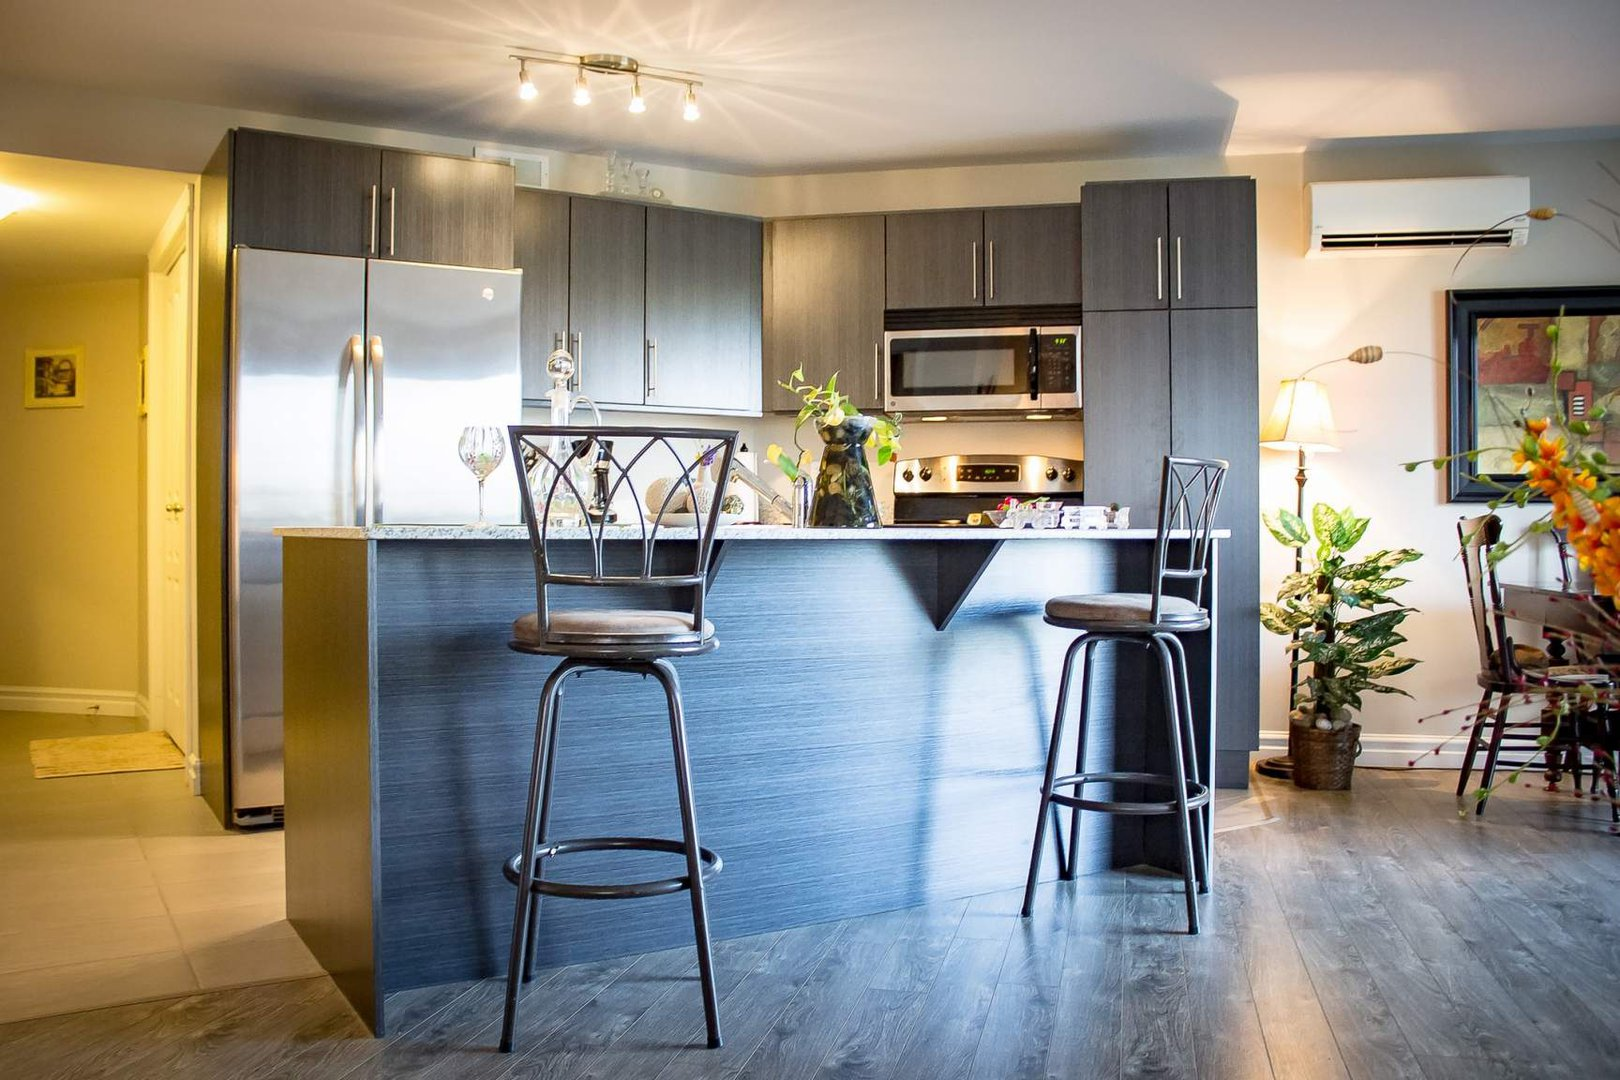 Mid-Rise-Apartment for rent at 747 Coverdale Road, Moncton, NB. This is the kitchen with tile floor, kitchen bar, stainless steel, hardwood floor, wall mounted ac, microwave and refrigerator.